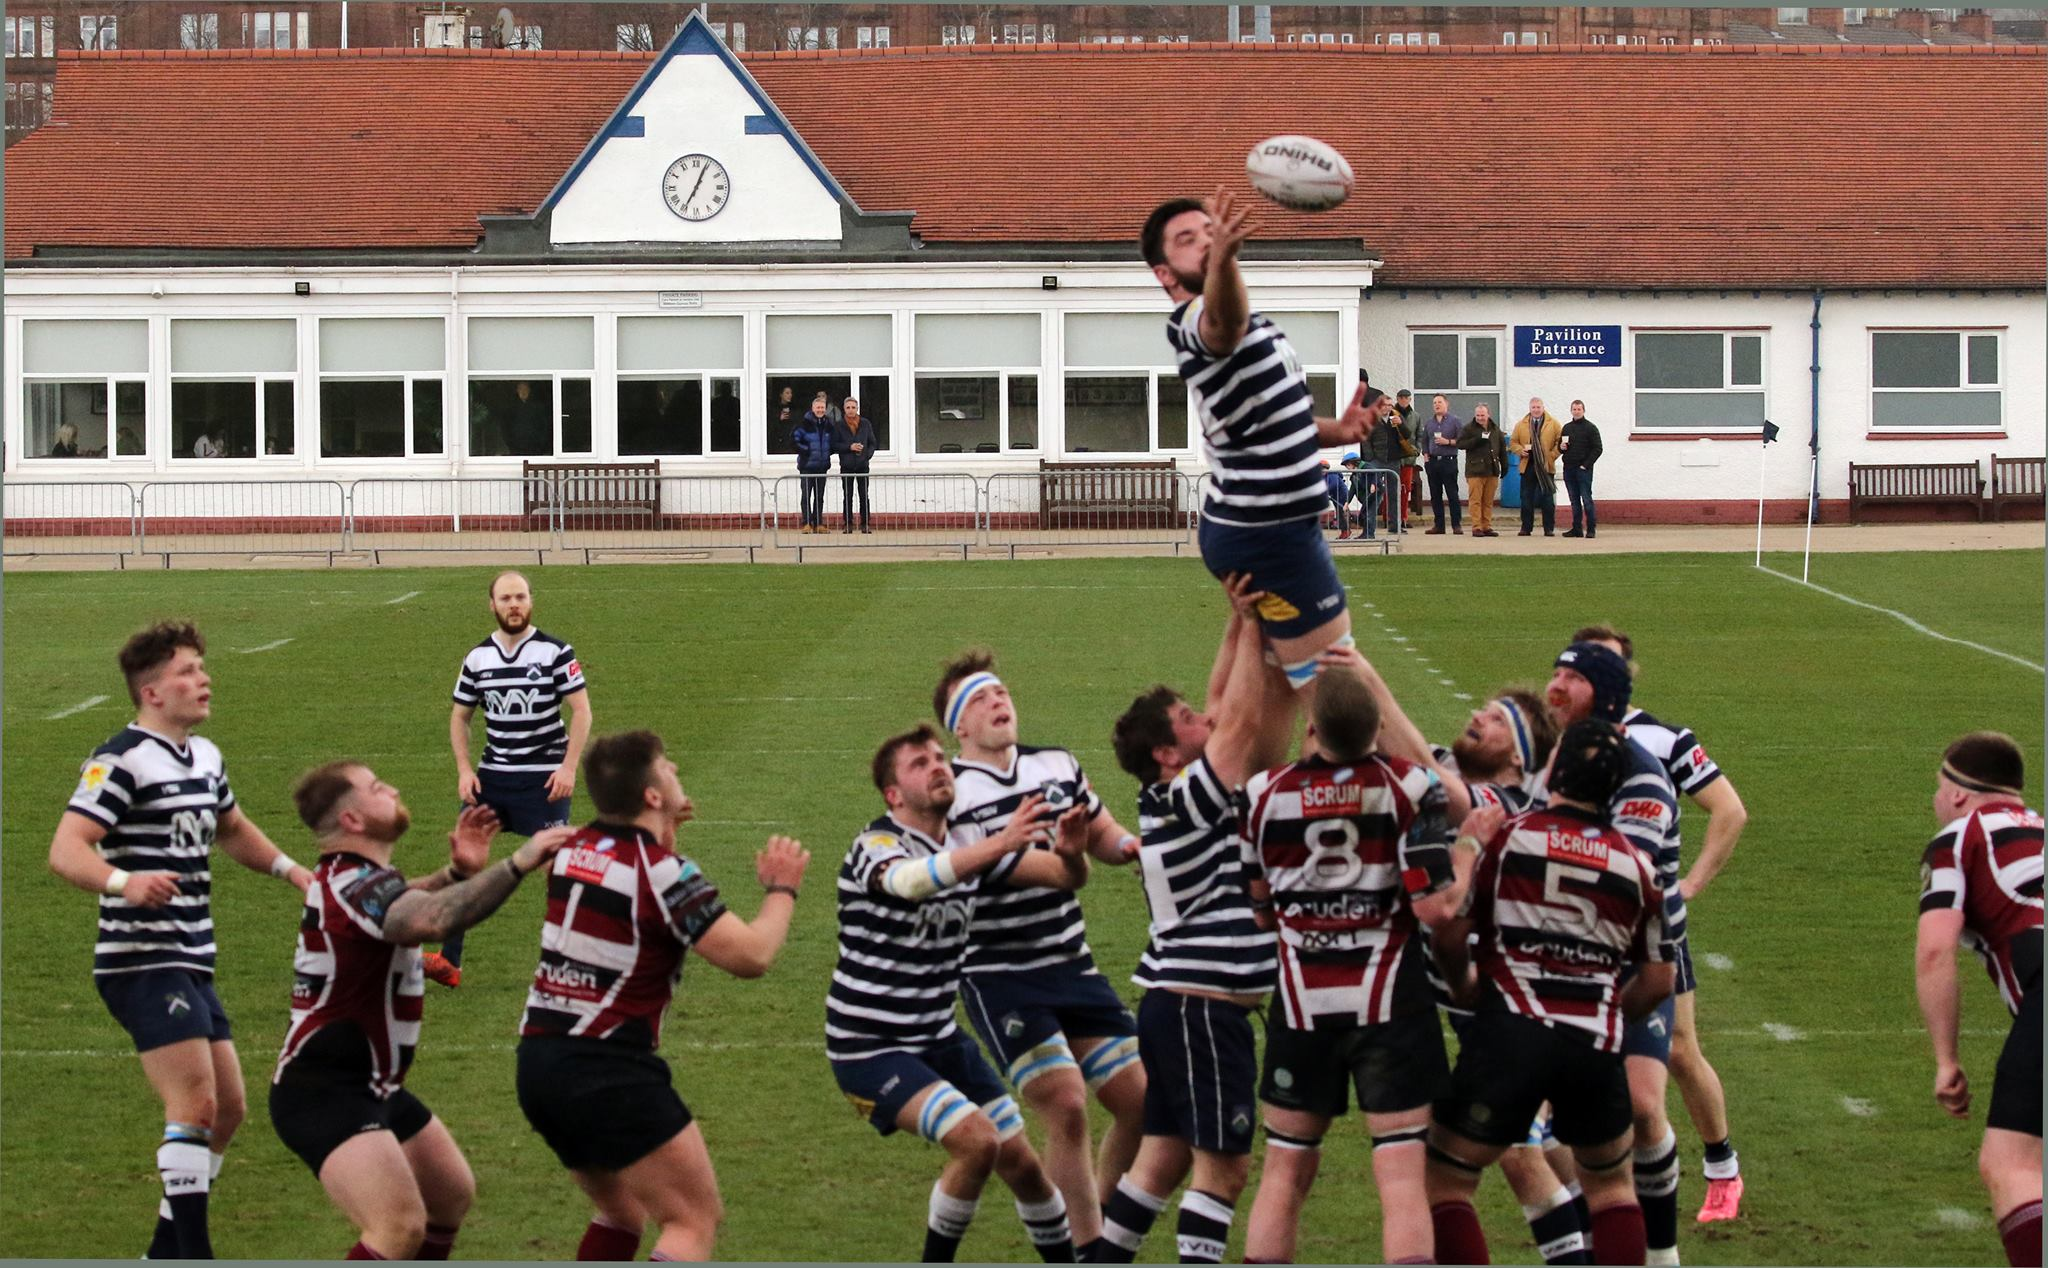 Wills leaping like a salmon